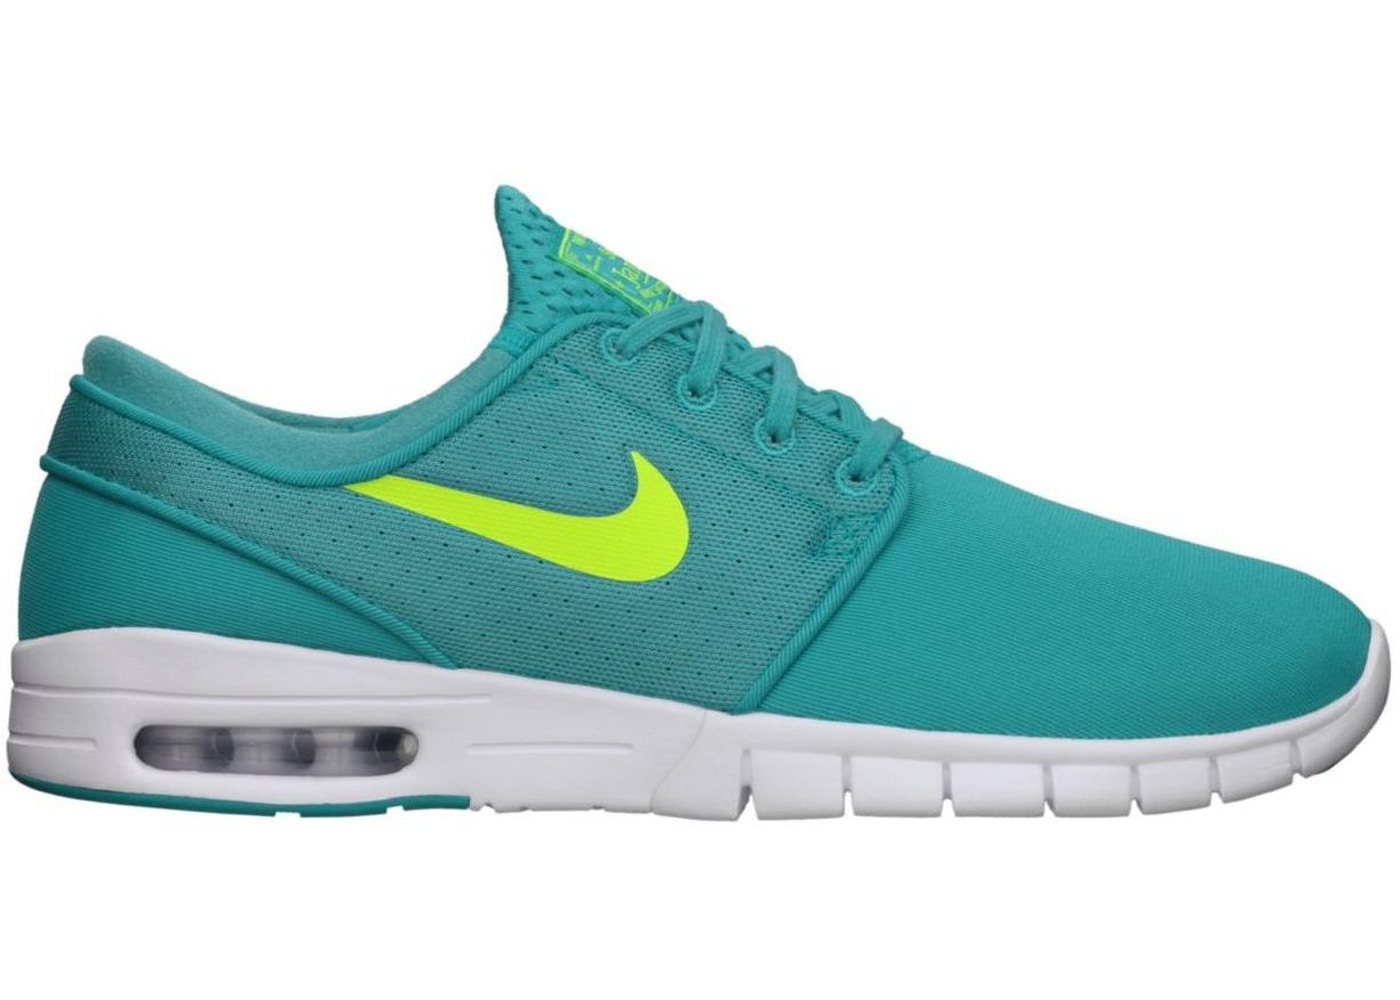 fd406c46 Sell. or Ask. Size: 10.5. View All Bids. Nike SB Stefan Janoski Max Dusty  Cactus